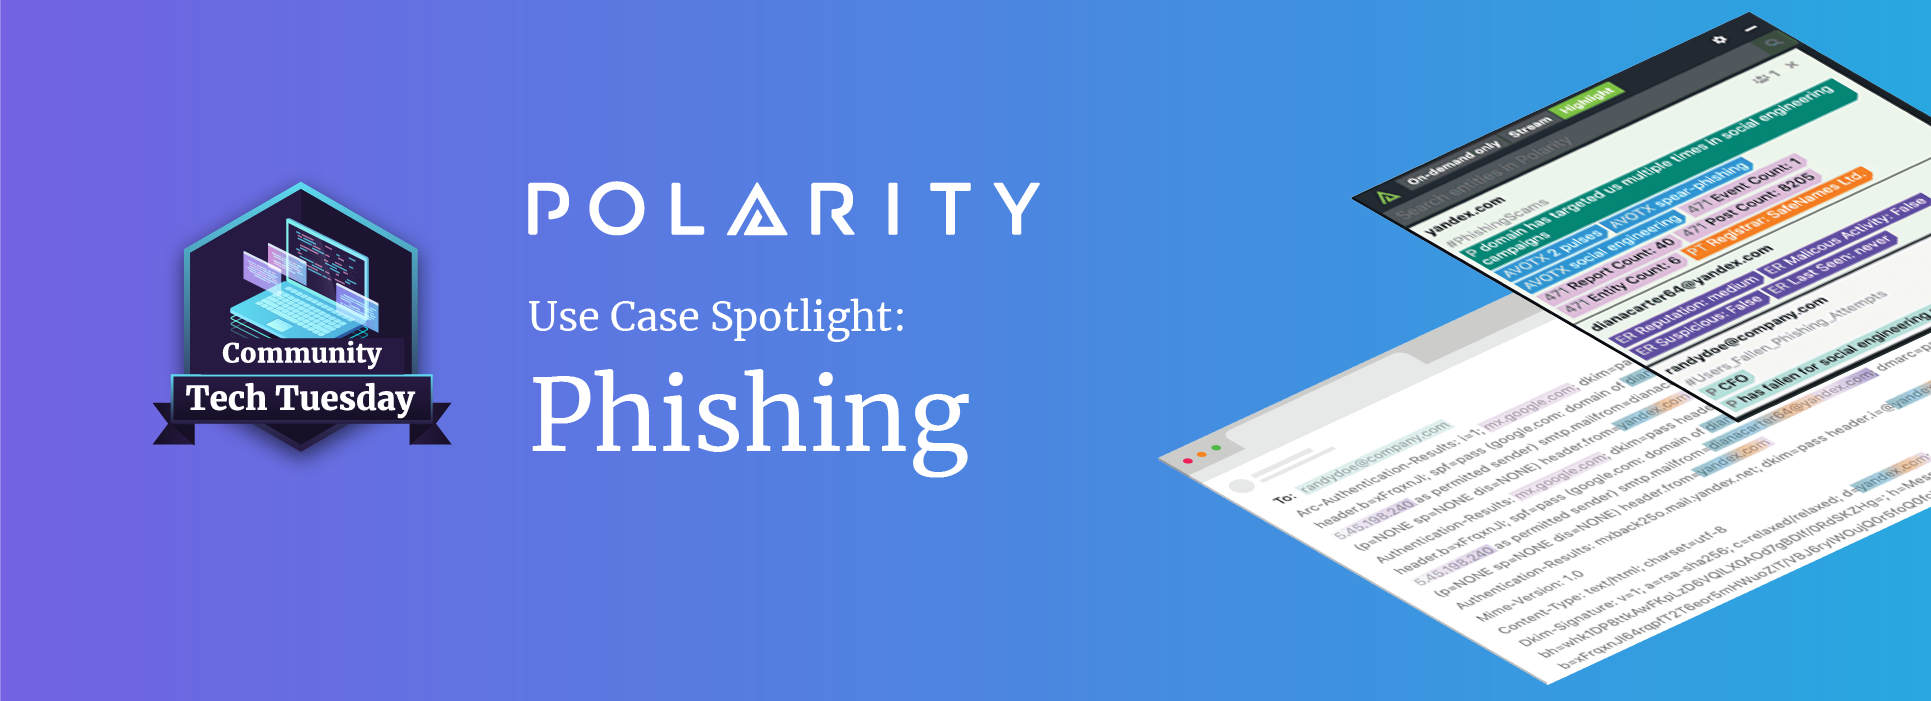 Polarity Use Case Spotlight: Phishingcover image